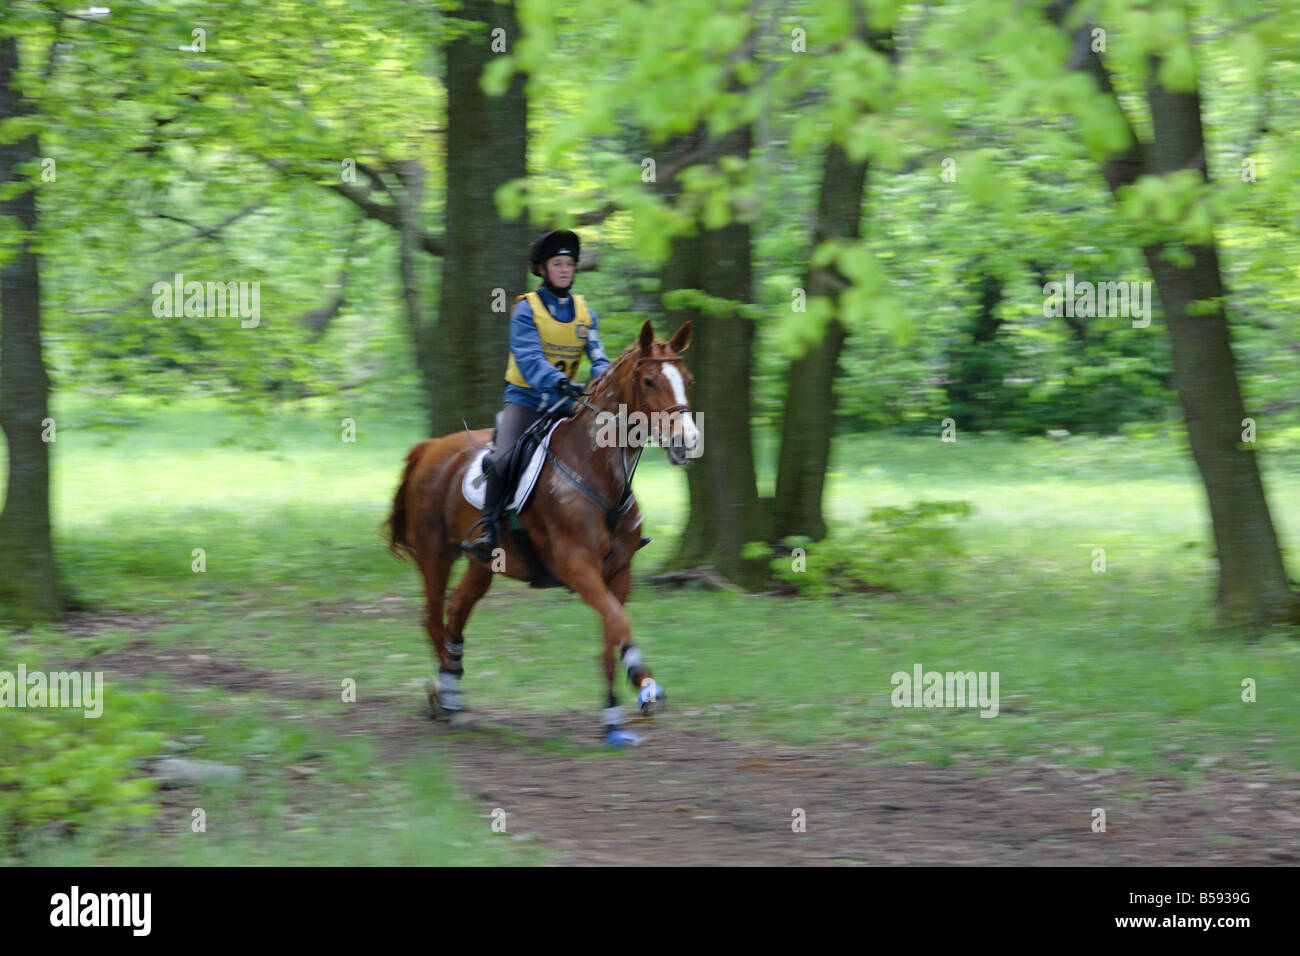 Horse rider at spring afternoon on the woods - Stock Image